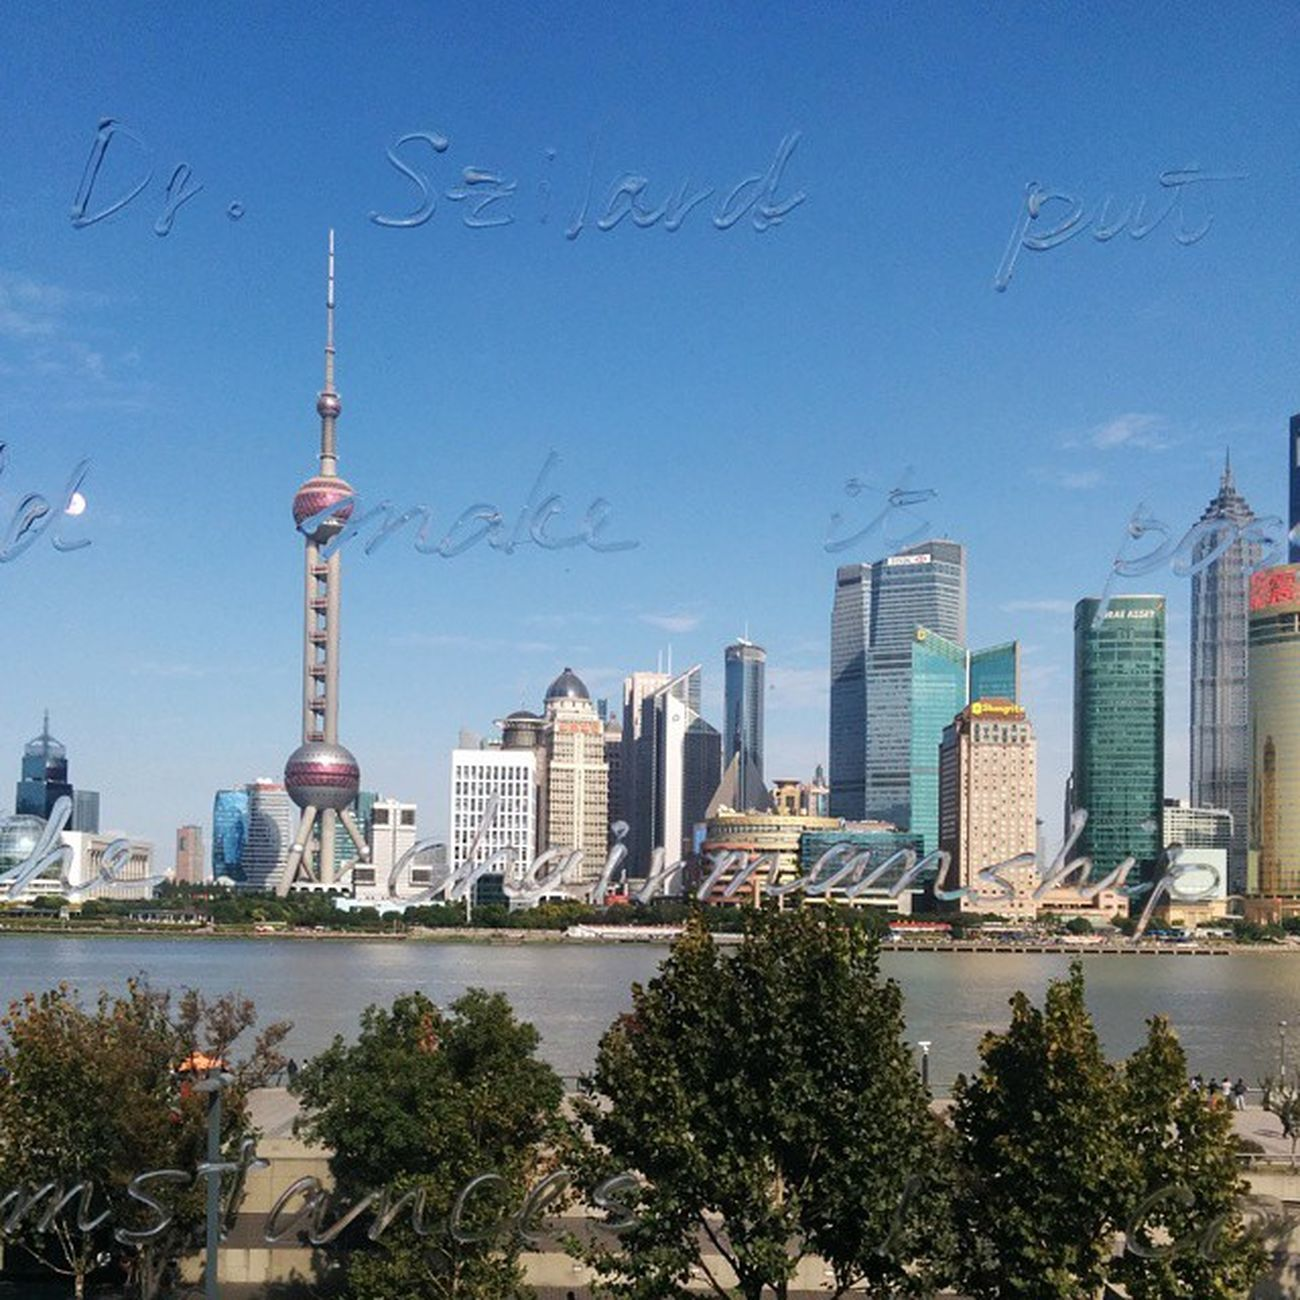 Thebund #Shanghai Art Exhibition Ilobster Amazing Window Sky Blue